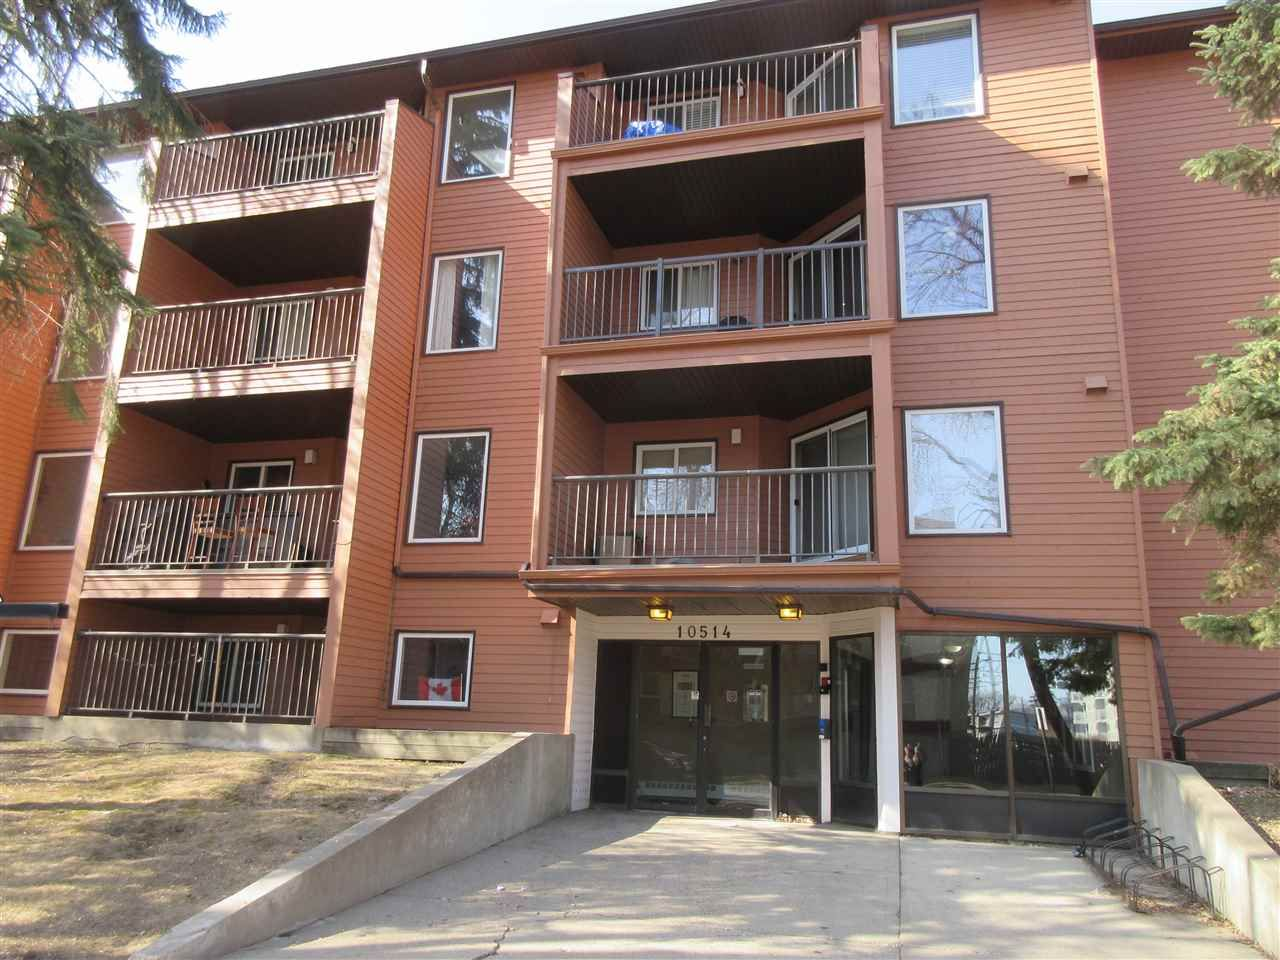 Main Photo: 320 10514 92 Street in Edmonton: Zone 13 Condo for sale : MLS®# E4236987